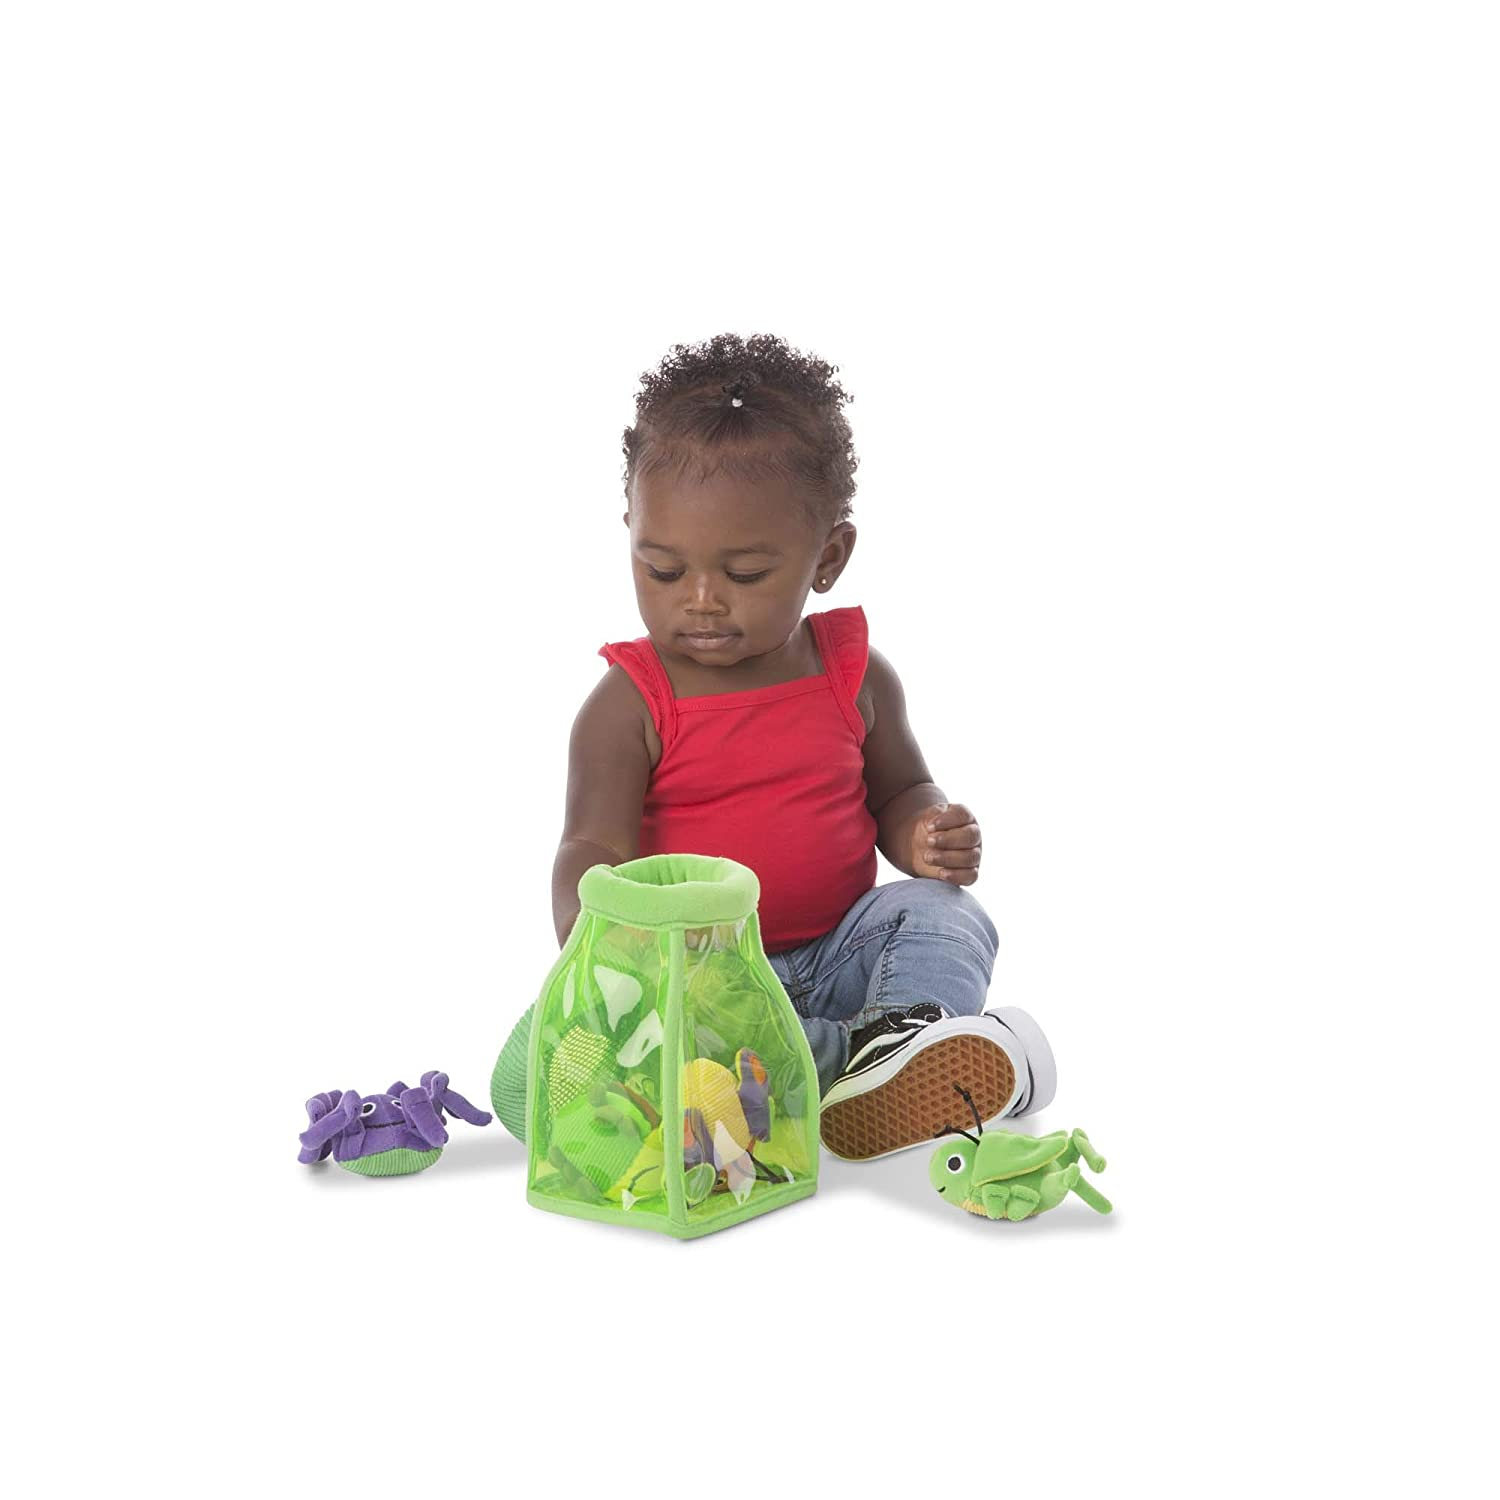 Toys for 1 year old babies 6149